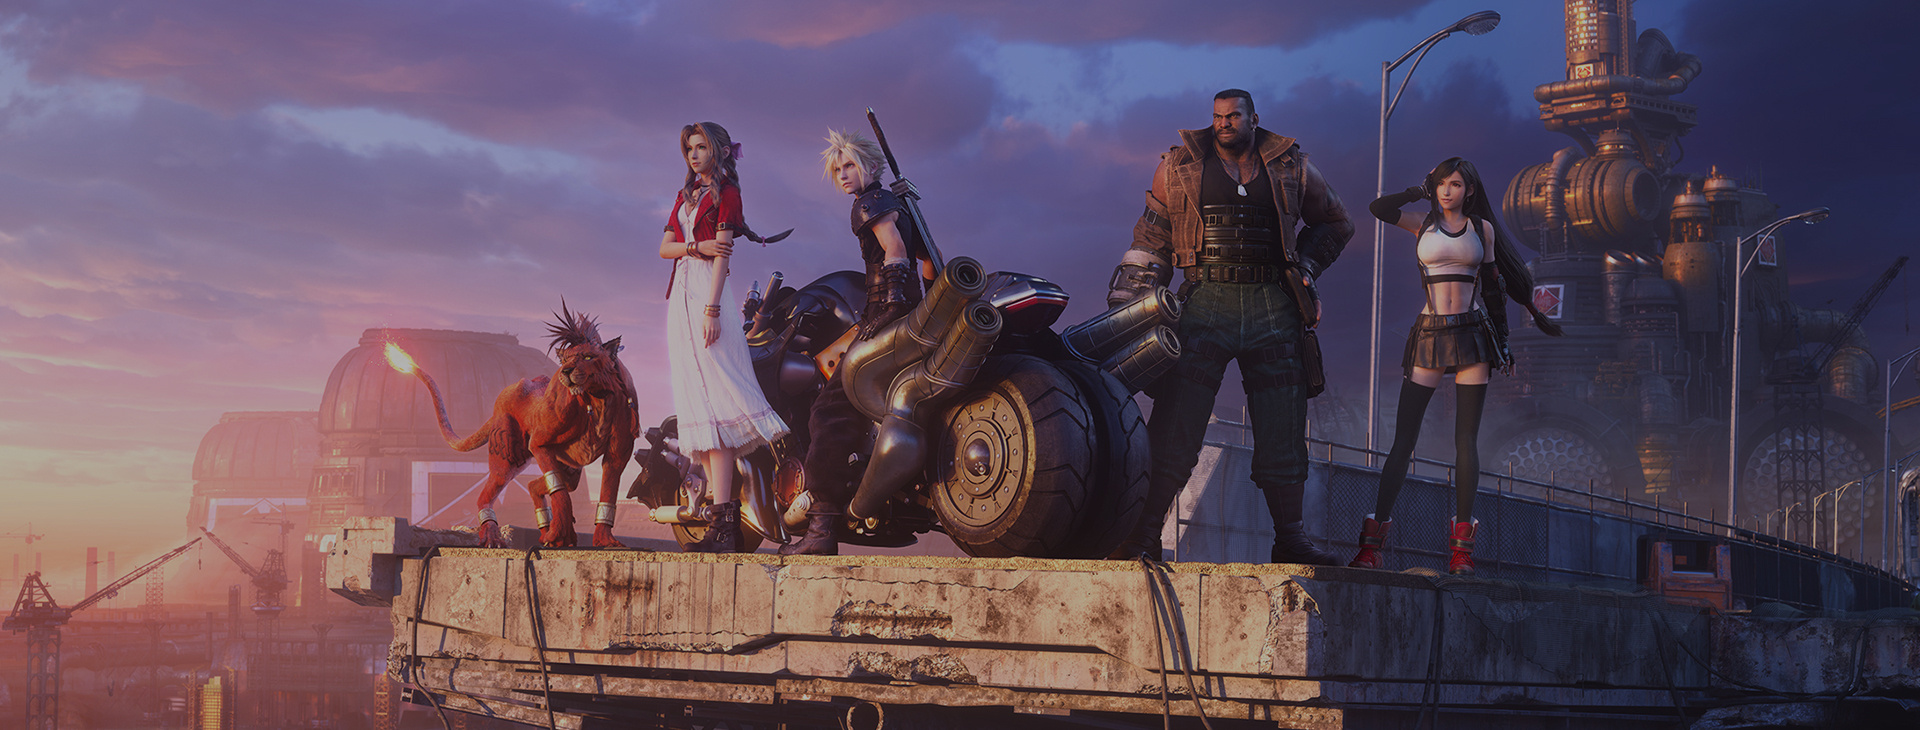 Final Fantasy VII Remake - Community, Brand Content, Influence